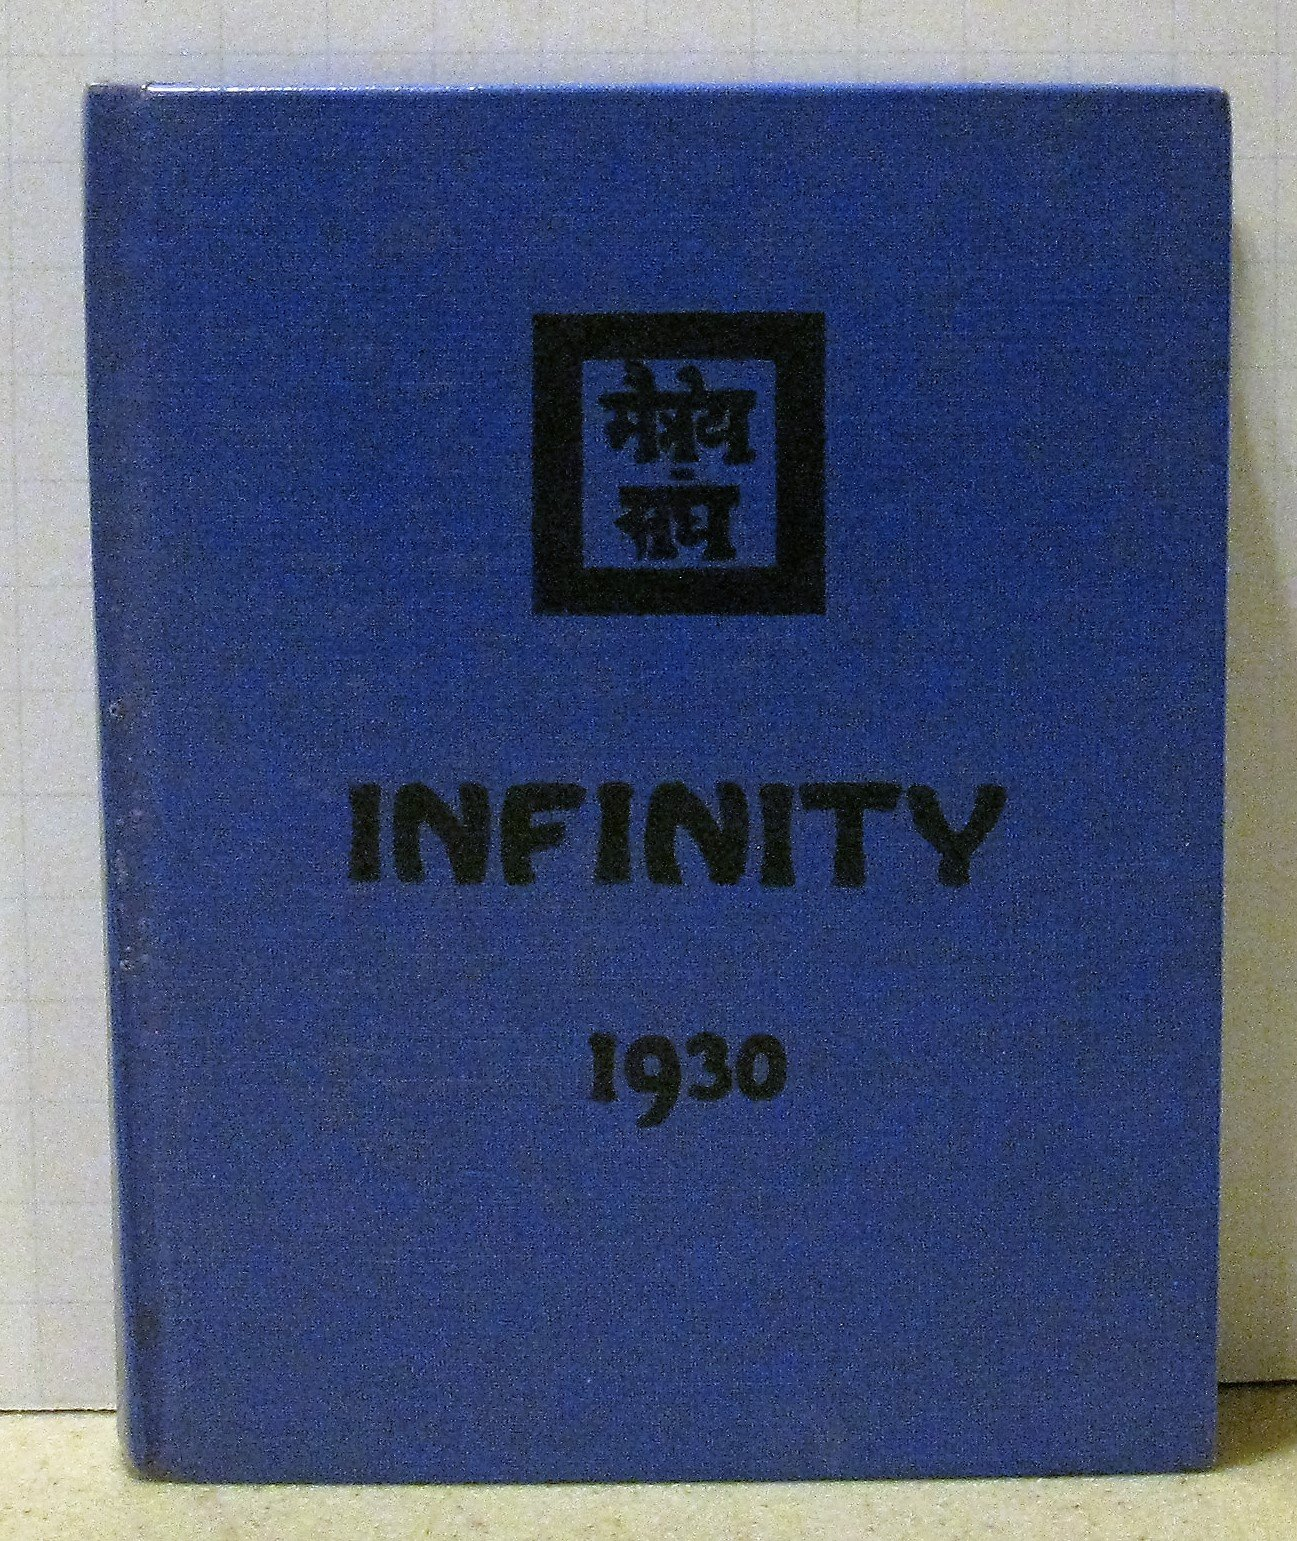 Infinity [Vol 1, book one, I] 1930 [Signs of Agni Yoga ...